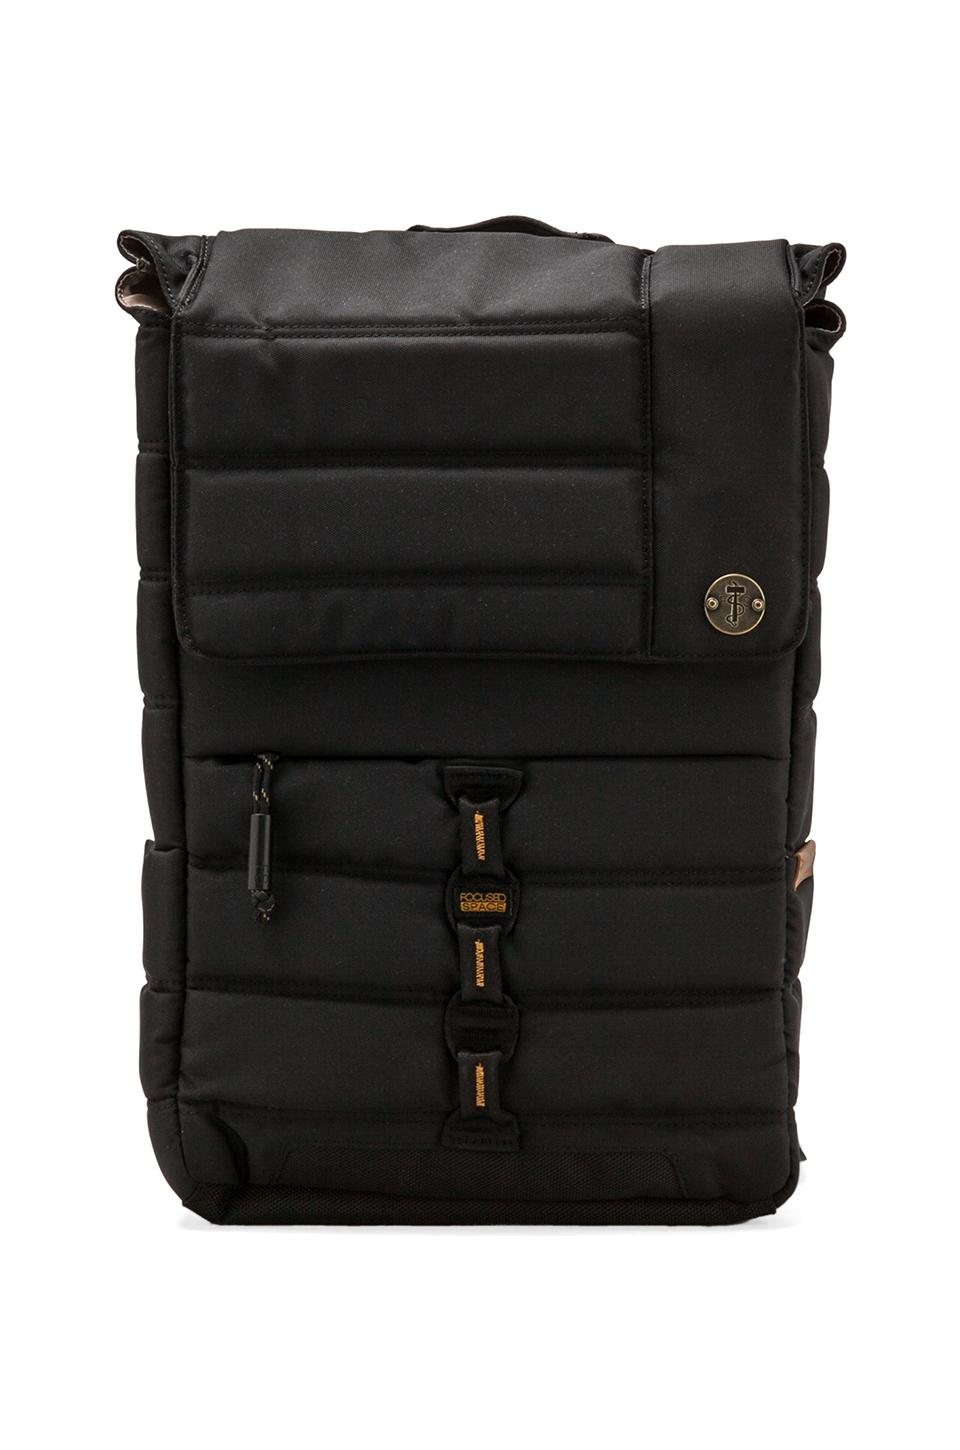 Focused Space The Slimline Backpack w/Padded Laptop Compartment in Black